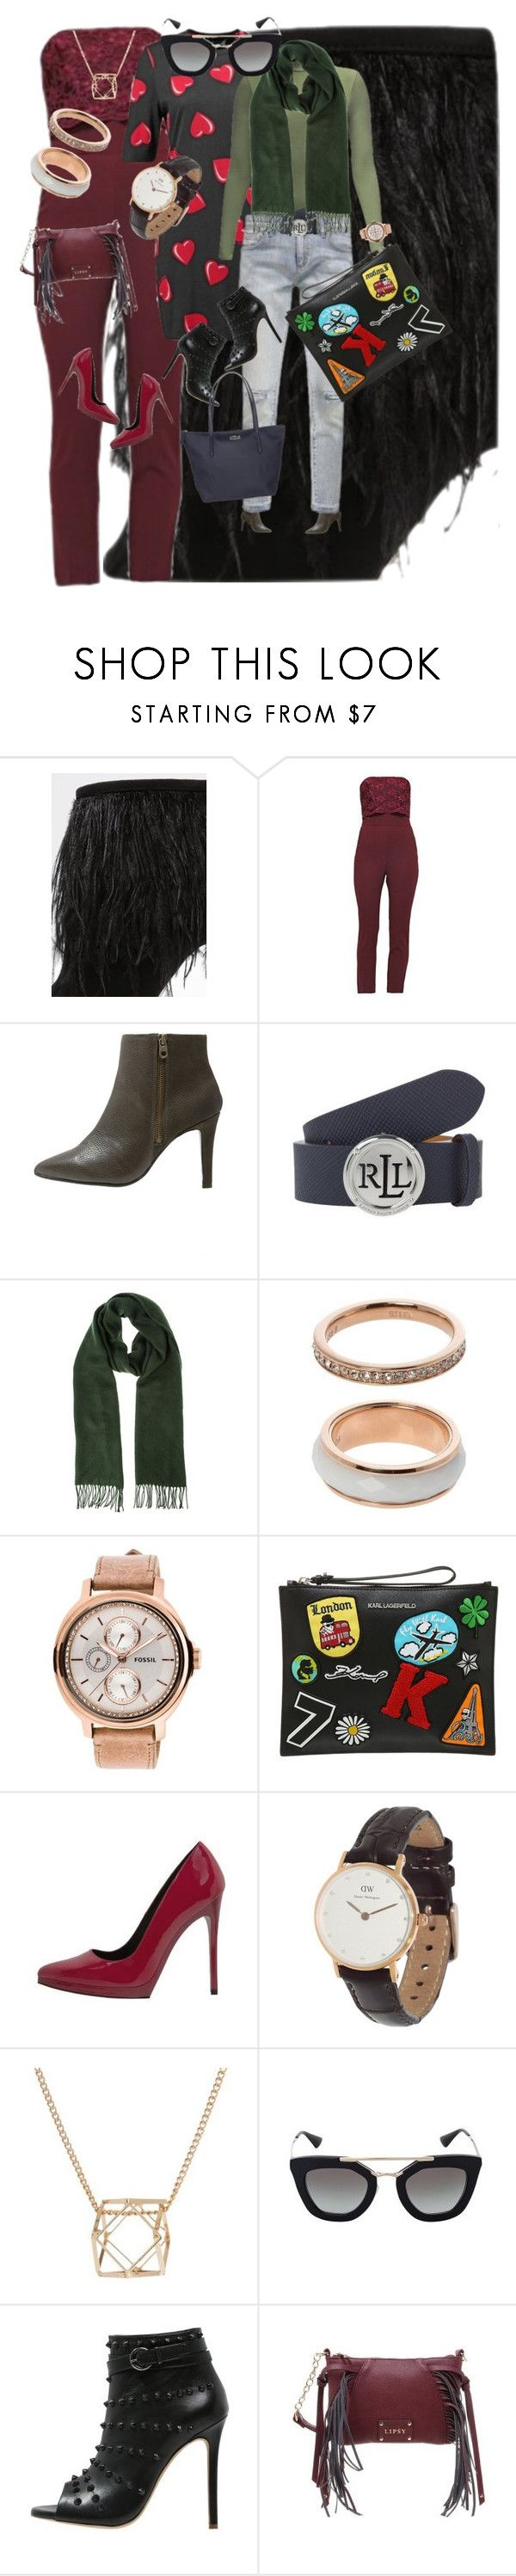 """Brought to You By the Zalando.ch"" by msdejazzy ❤ liked on Polyvore featuring Little Mistress, Miss Selfridge, Liebeskind, Topshop, even&odd, Daniel Wellington, SELECTED, Prada, Lipsy and Lacoste"